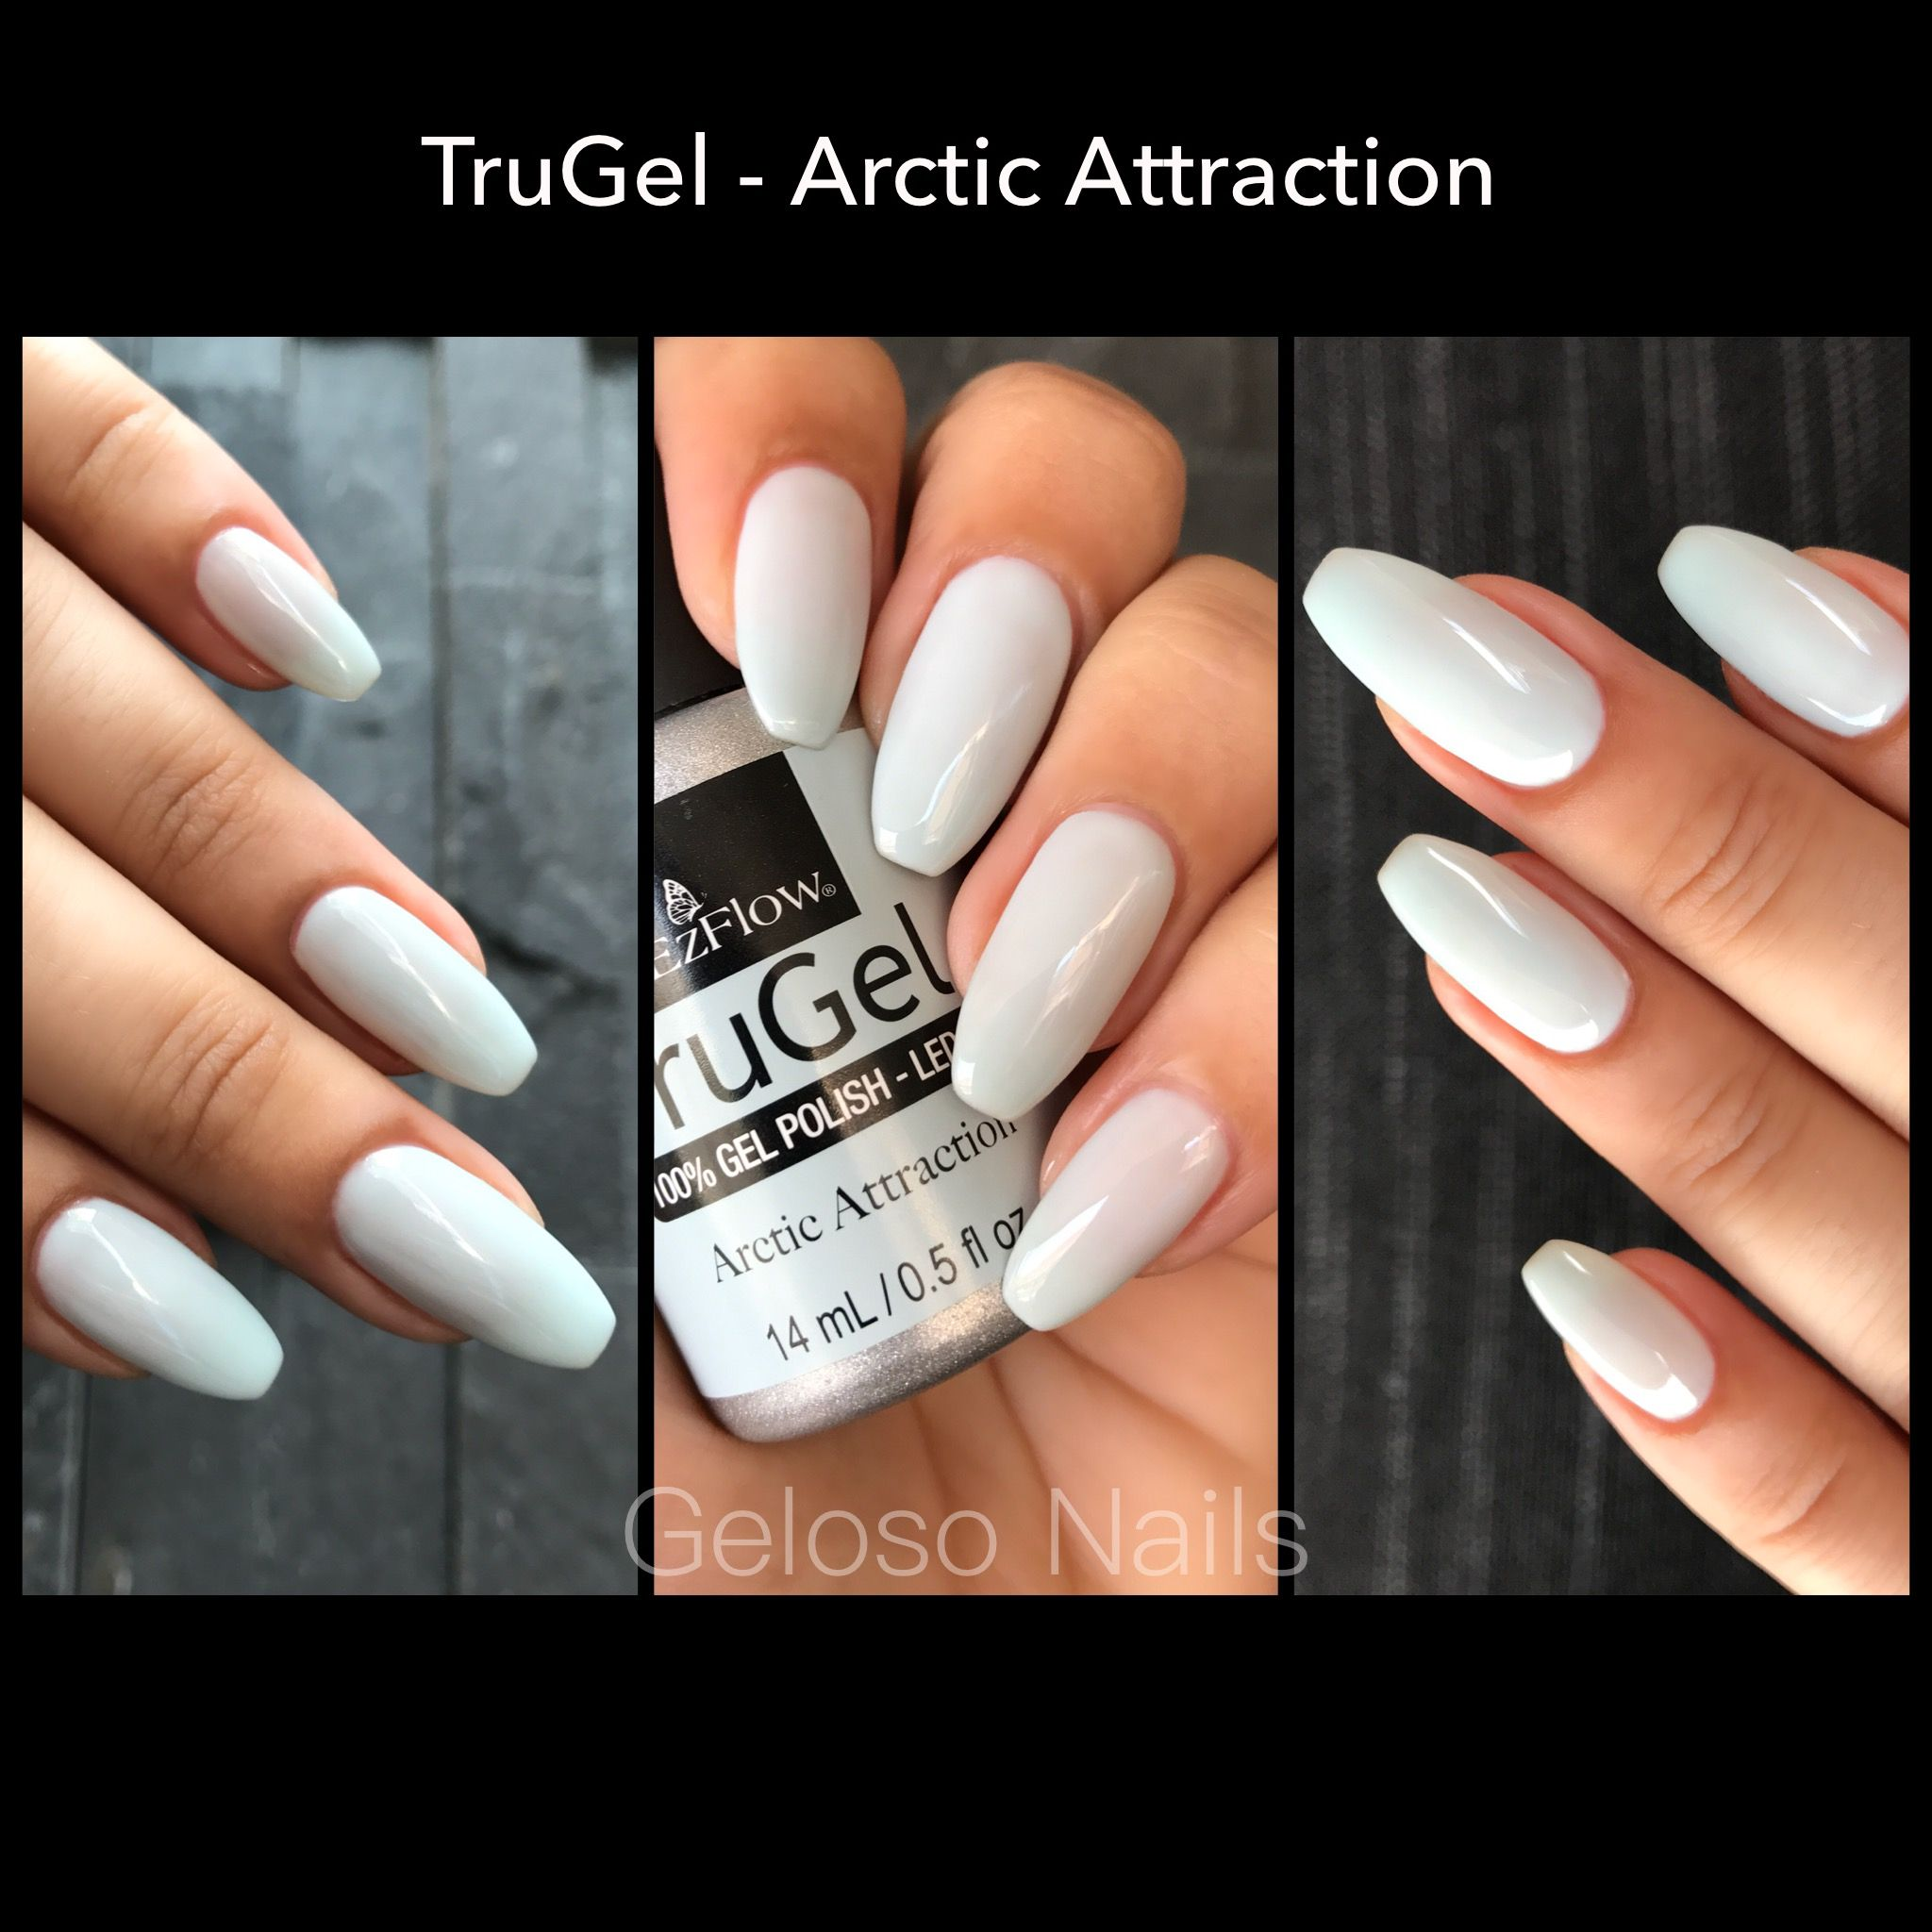 Ezflow TruGel Arctic Attraction from the ice empress collection ...